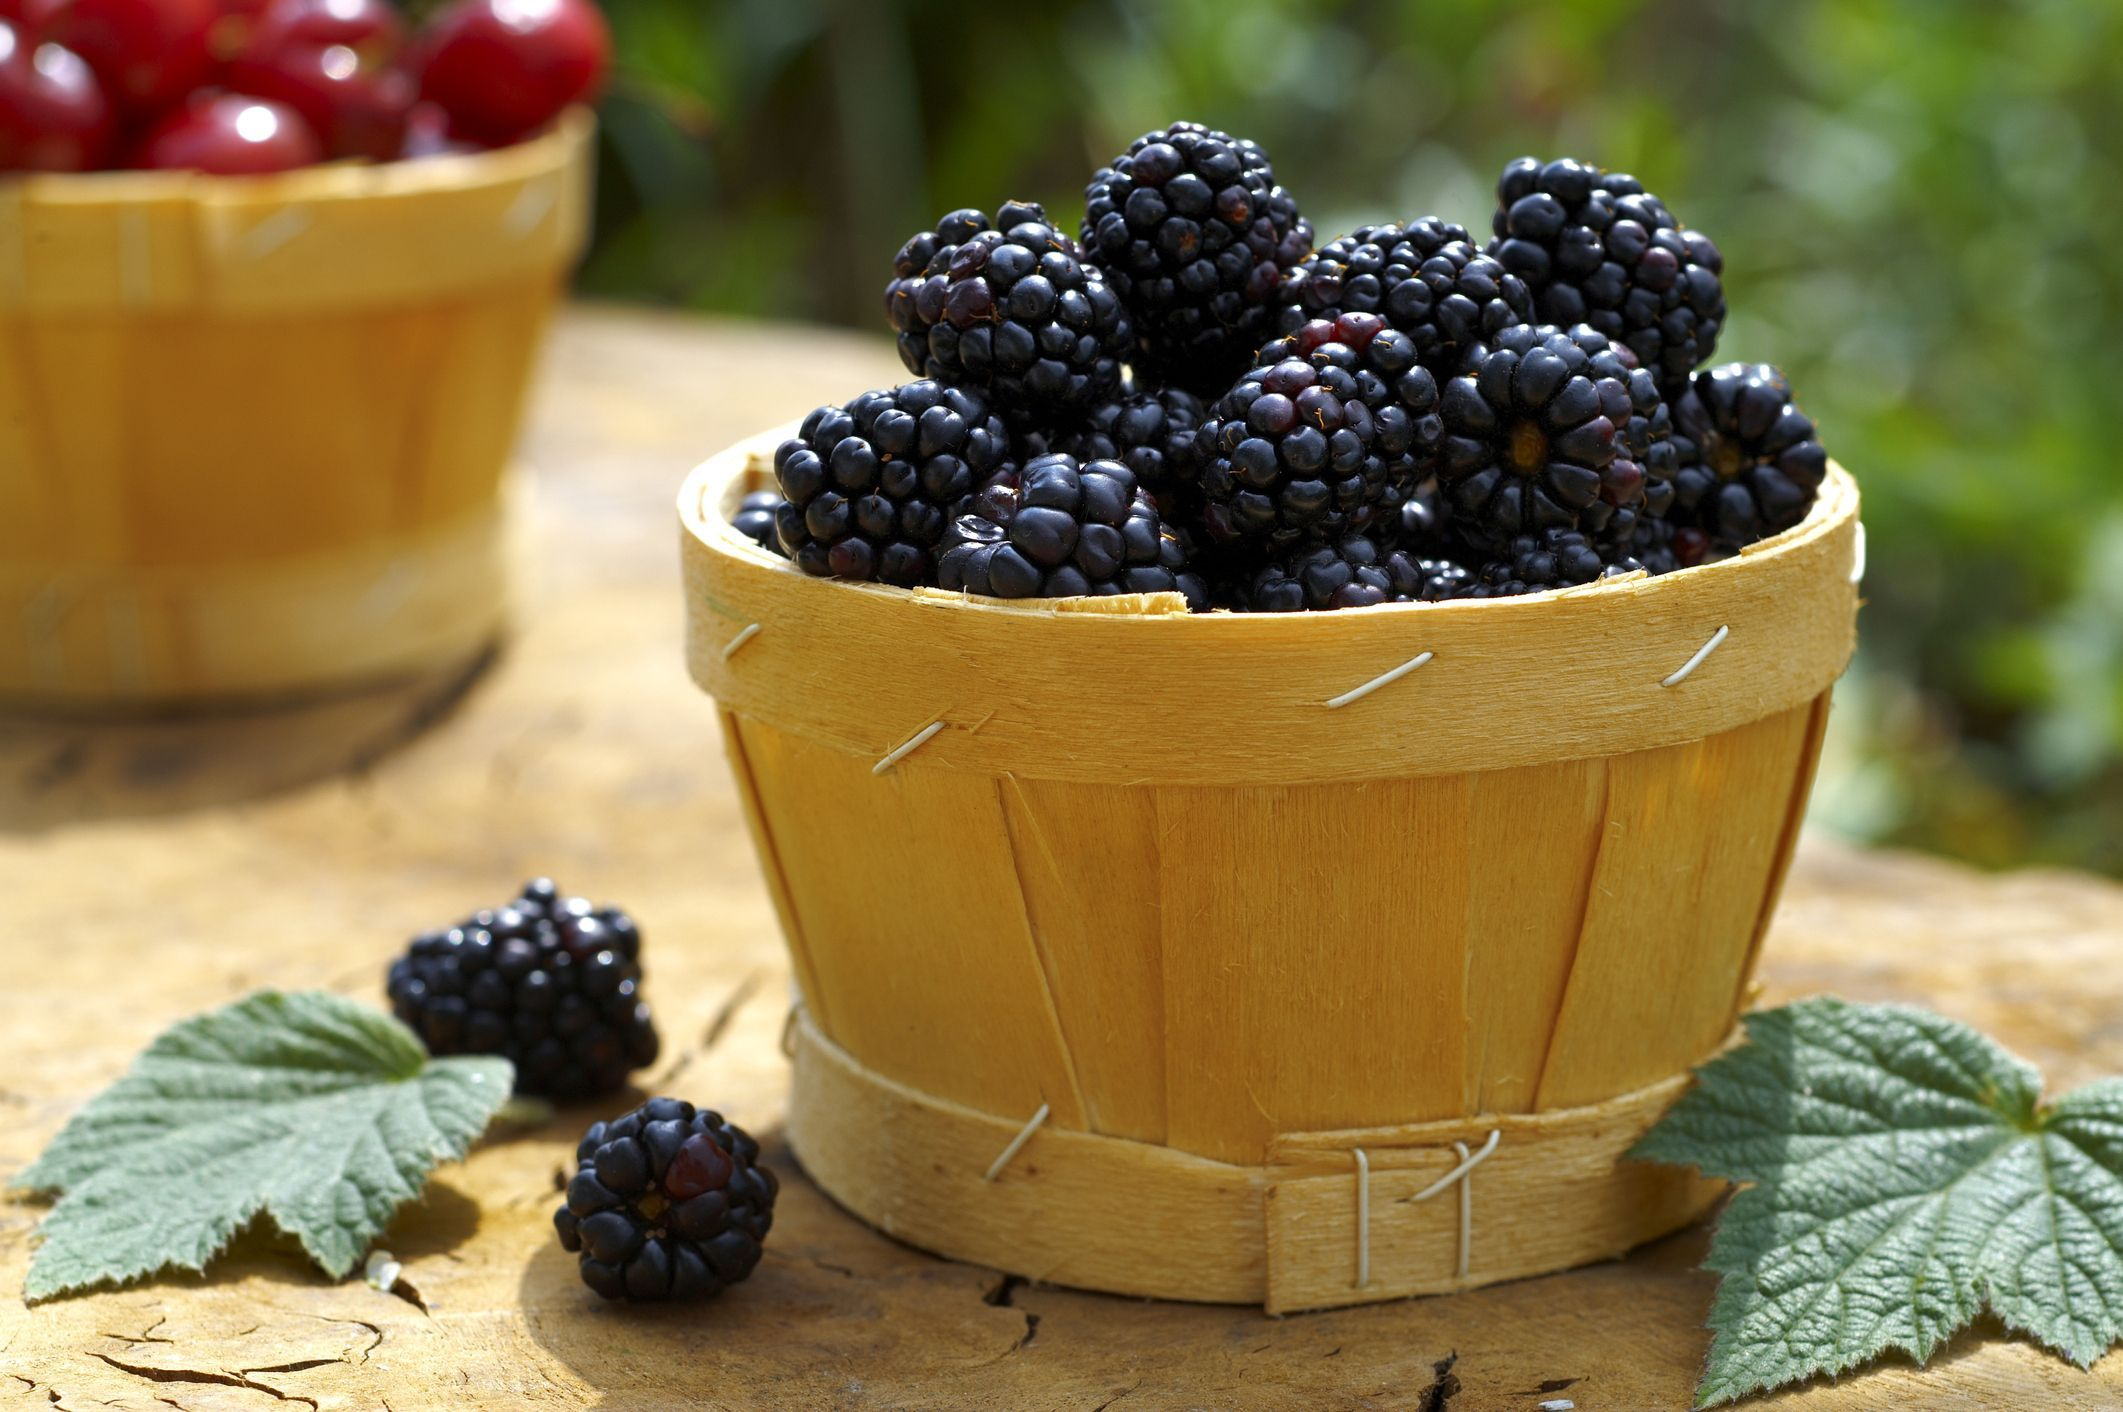 Blackberries-in-a-Basket-579115183df78c17345e90ca